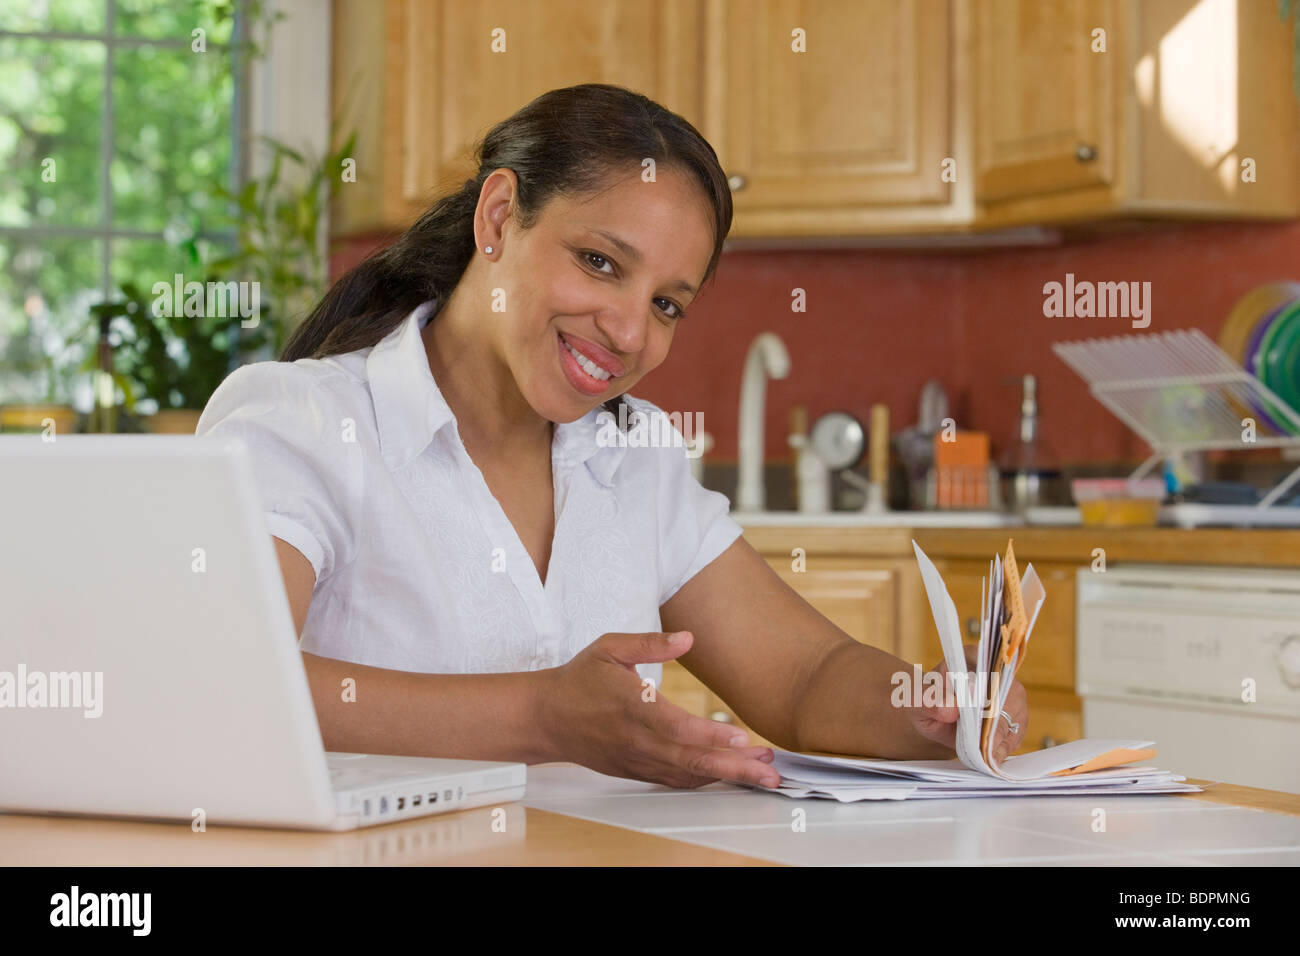 Hispanic woman sitting in front of a laptop and holding bills in the kitchen - Stock Image